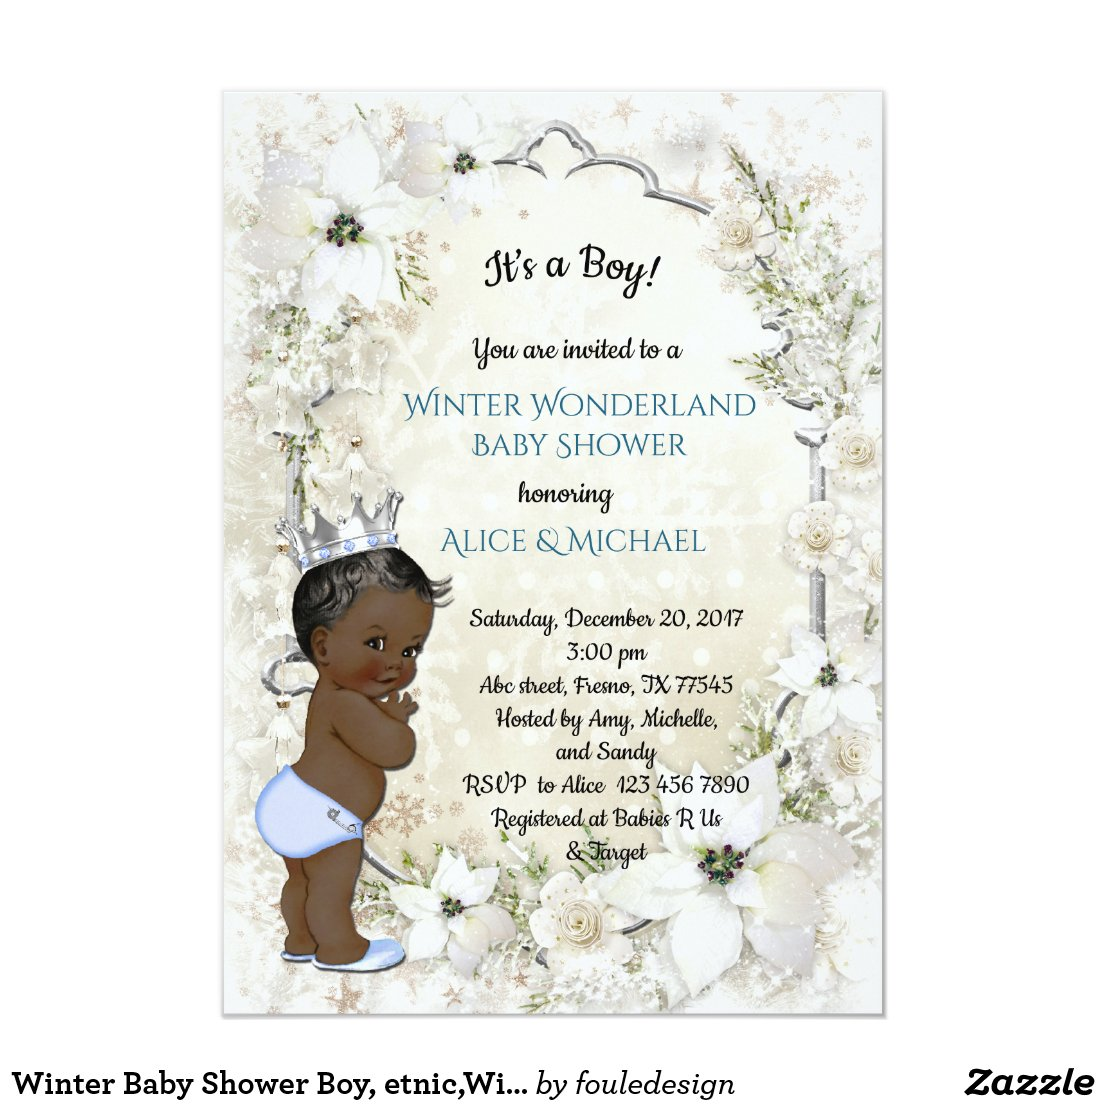 Winter Baby Shower Boy, etnic,Winter Wonderland Card